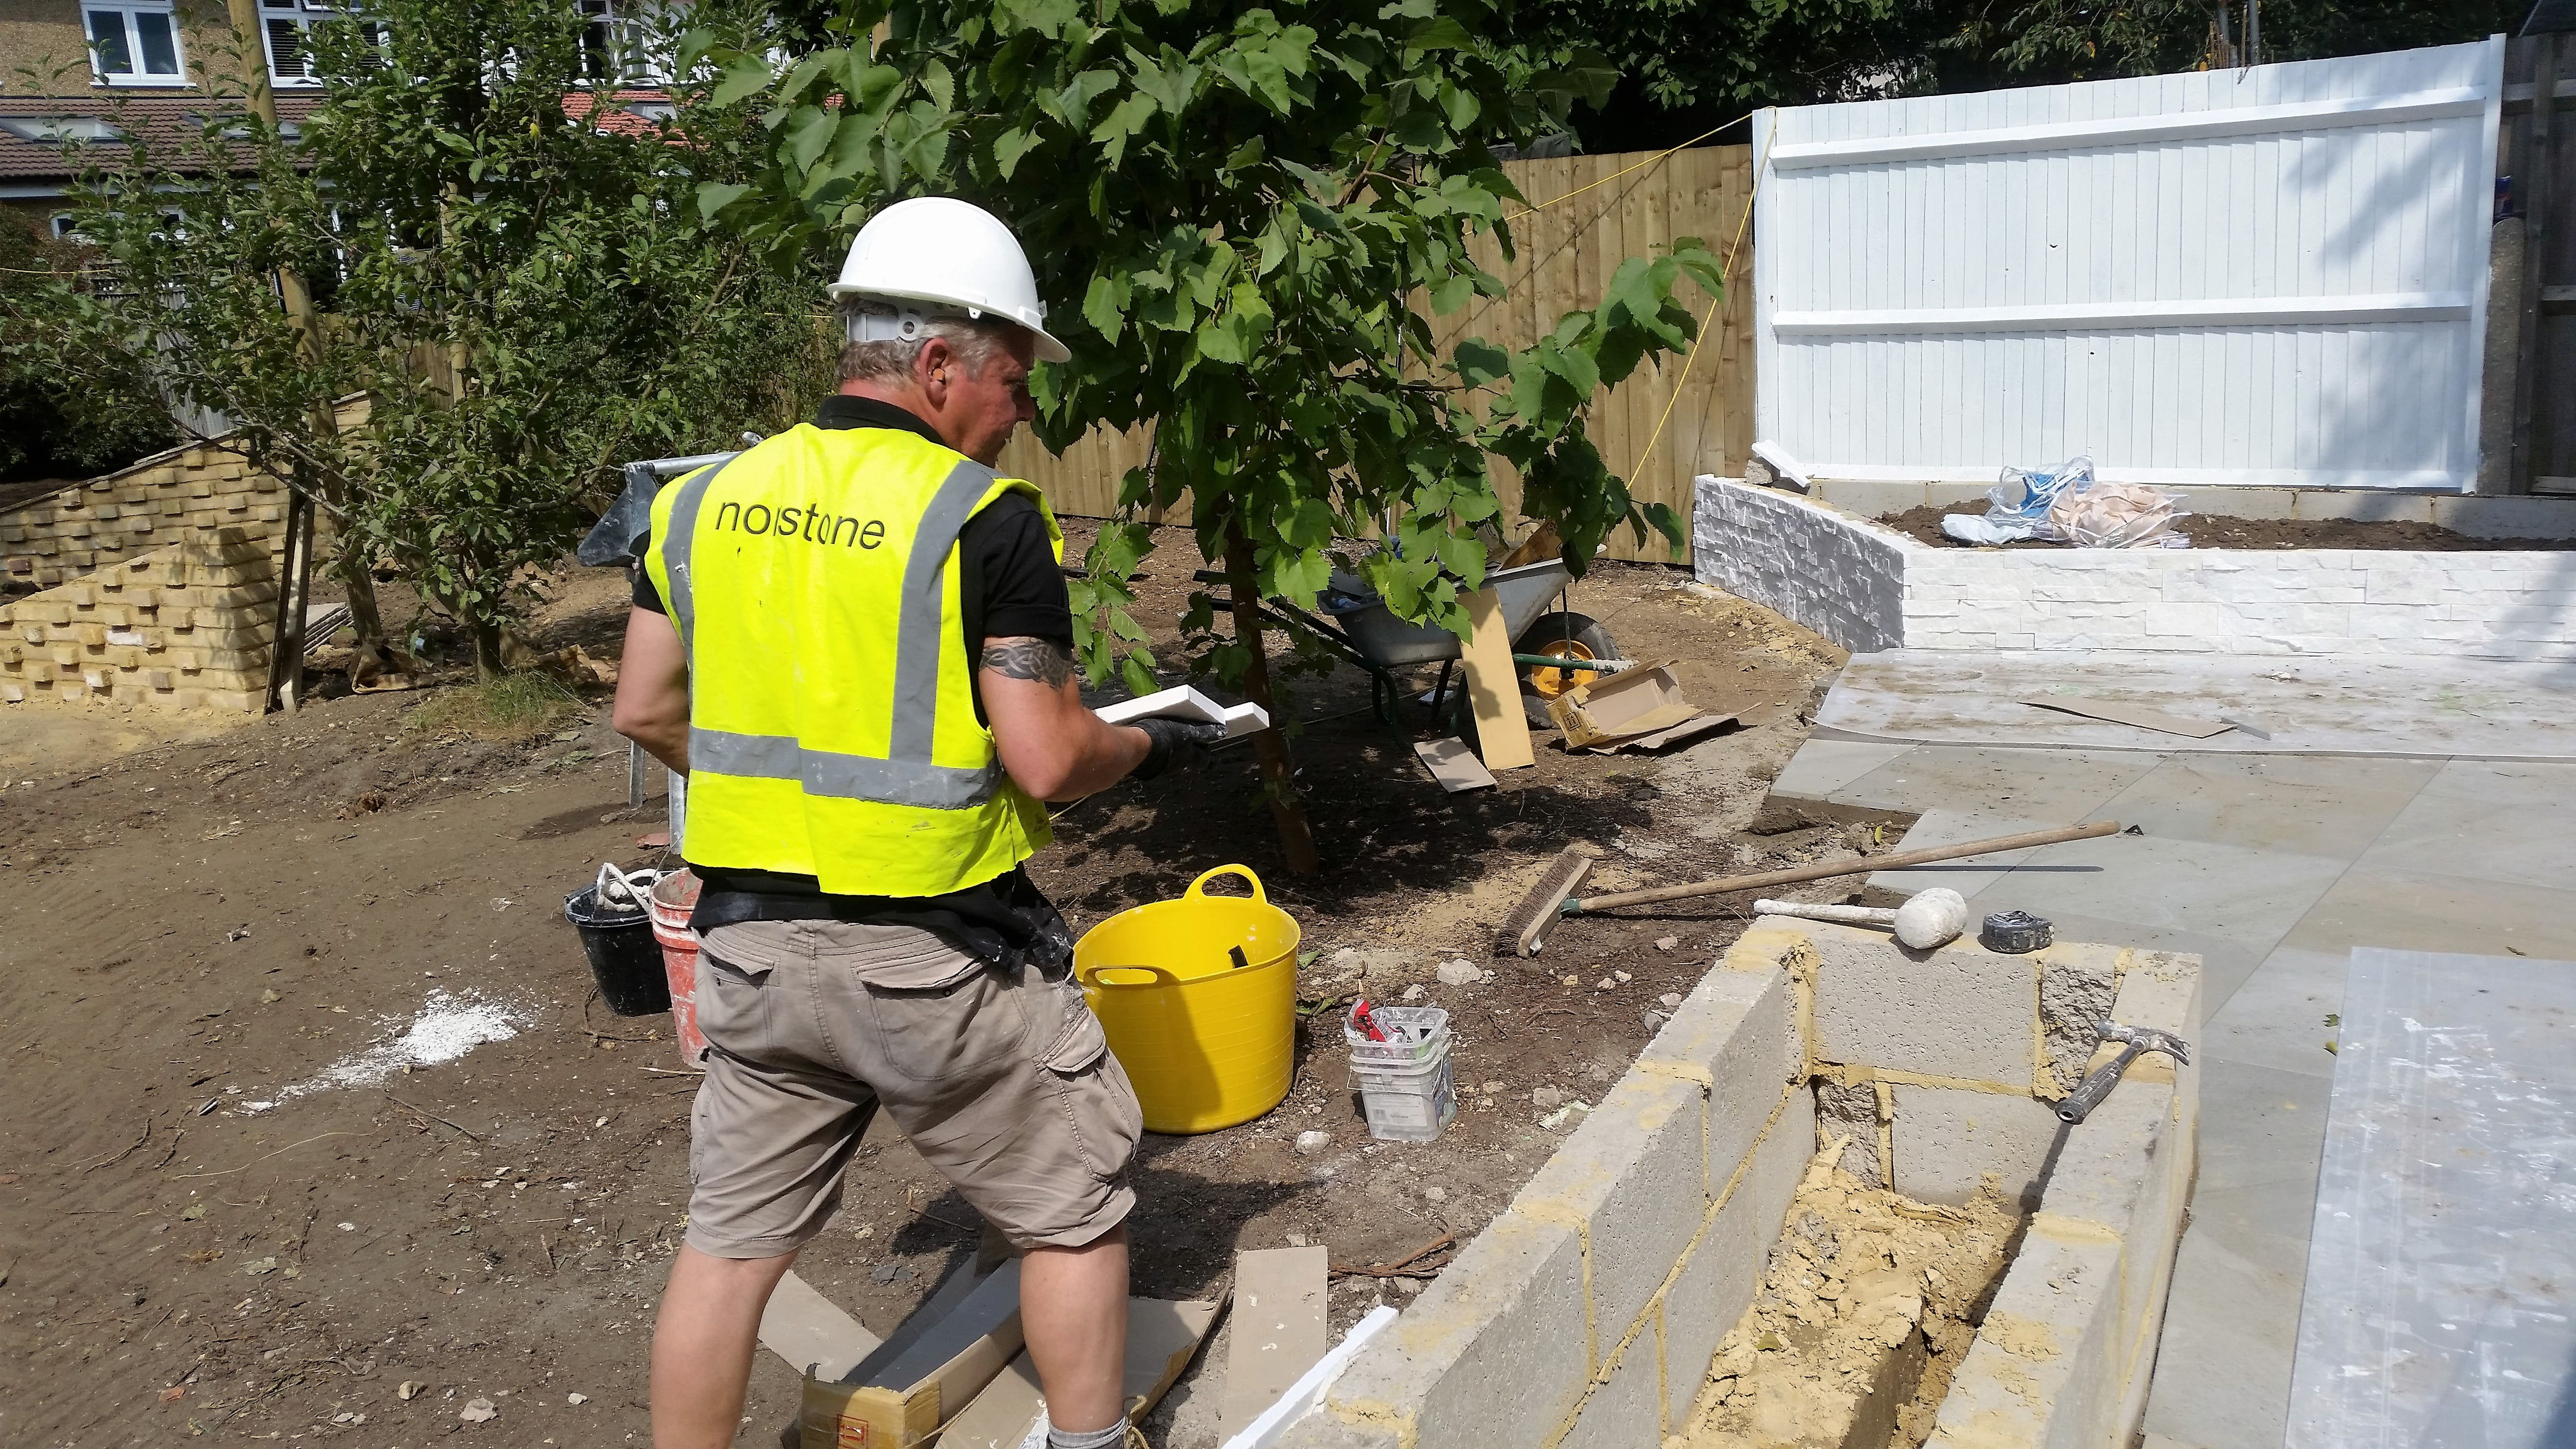 Norstone White Rock Panels being installed on an exterior garden wall and cleaned up post installation without the need for acid.